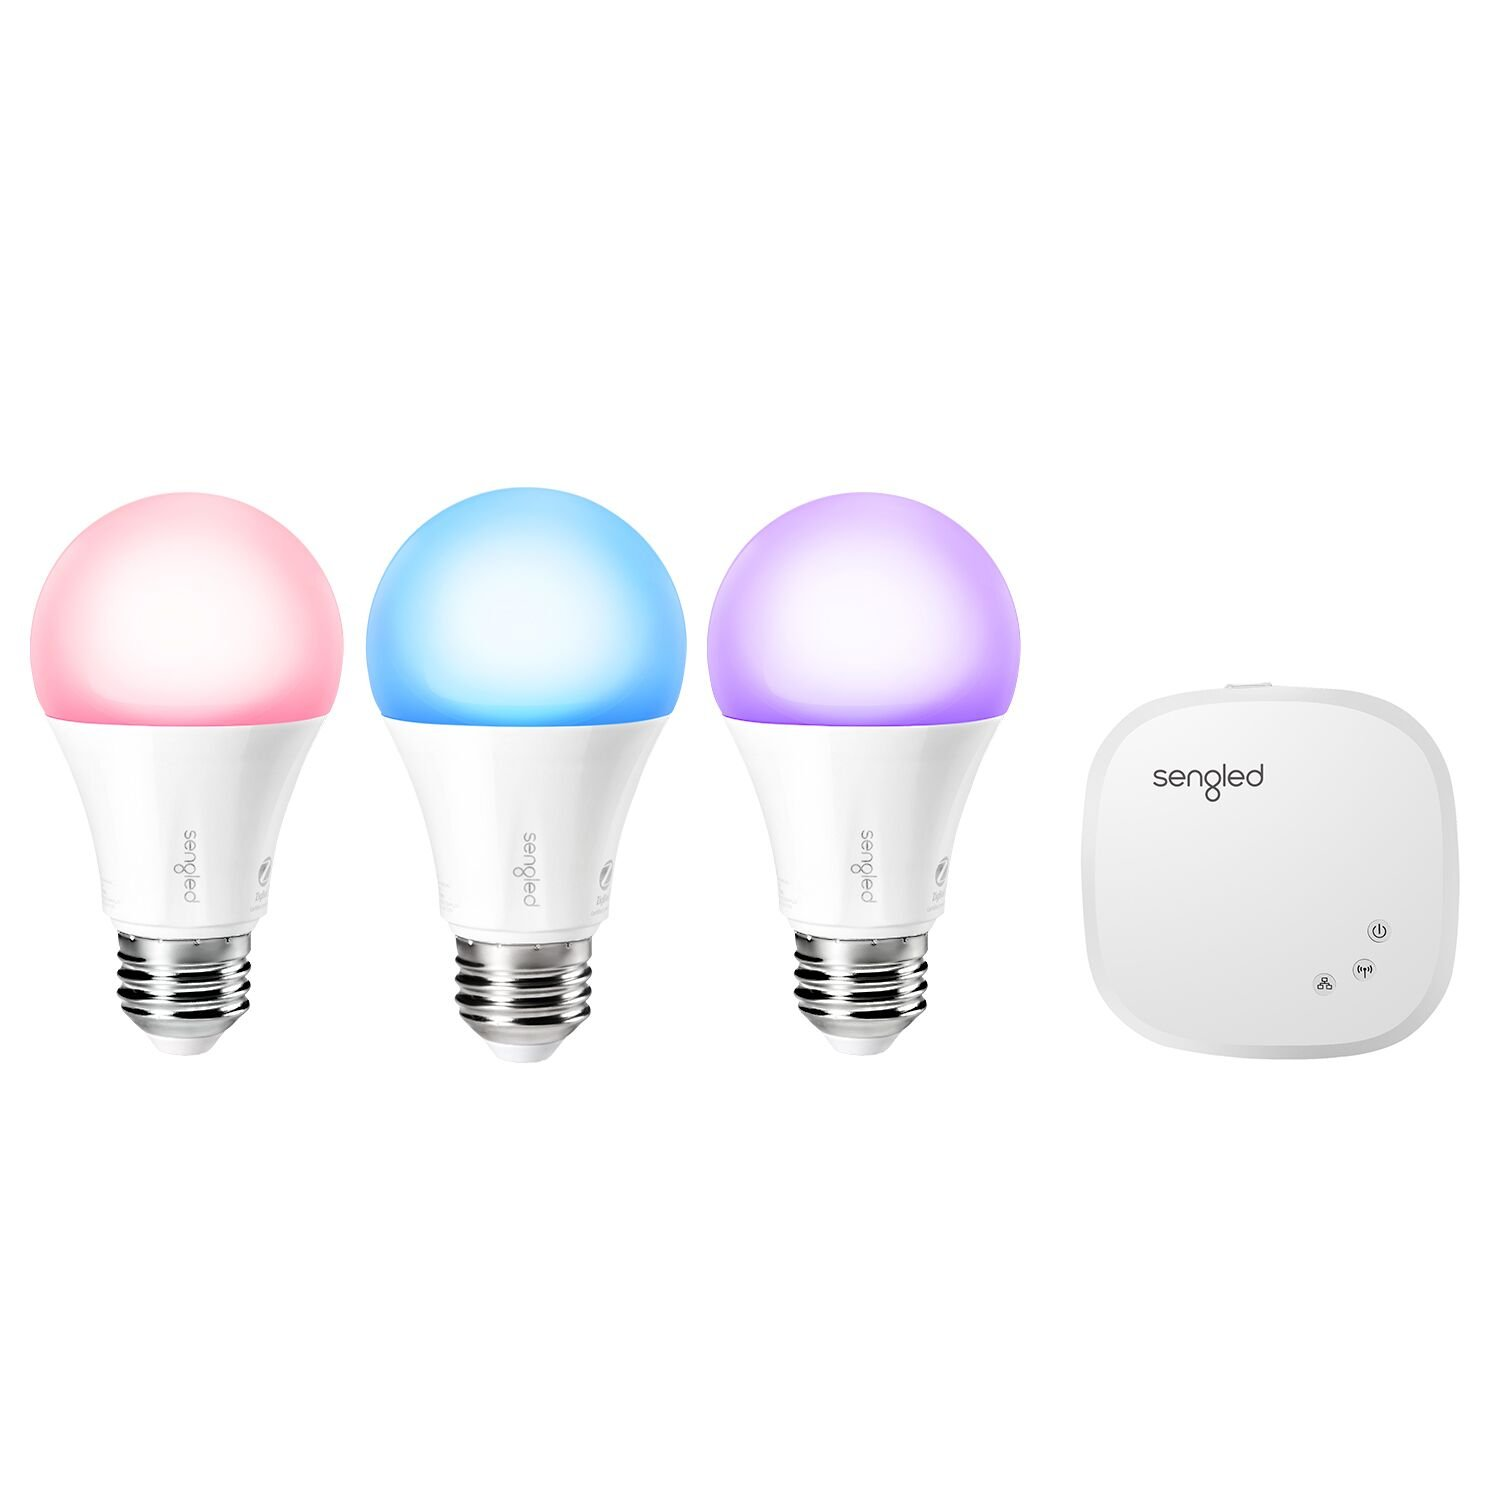 Sengled Element Color Plus Lighting Starter Kit, Control up to 64 Bulbs, 16 Million Color Output, Tunable Warm White to Daylight (2000K – 6500K), Compatible with Amazon Alexa and Google Assistant by Sengled